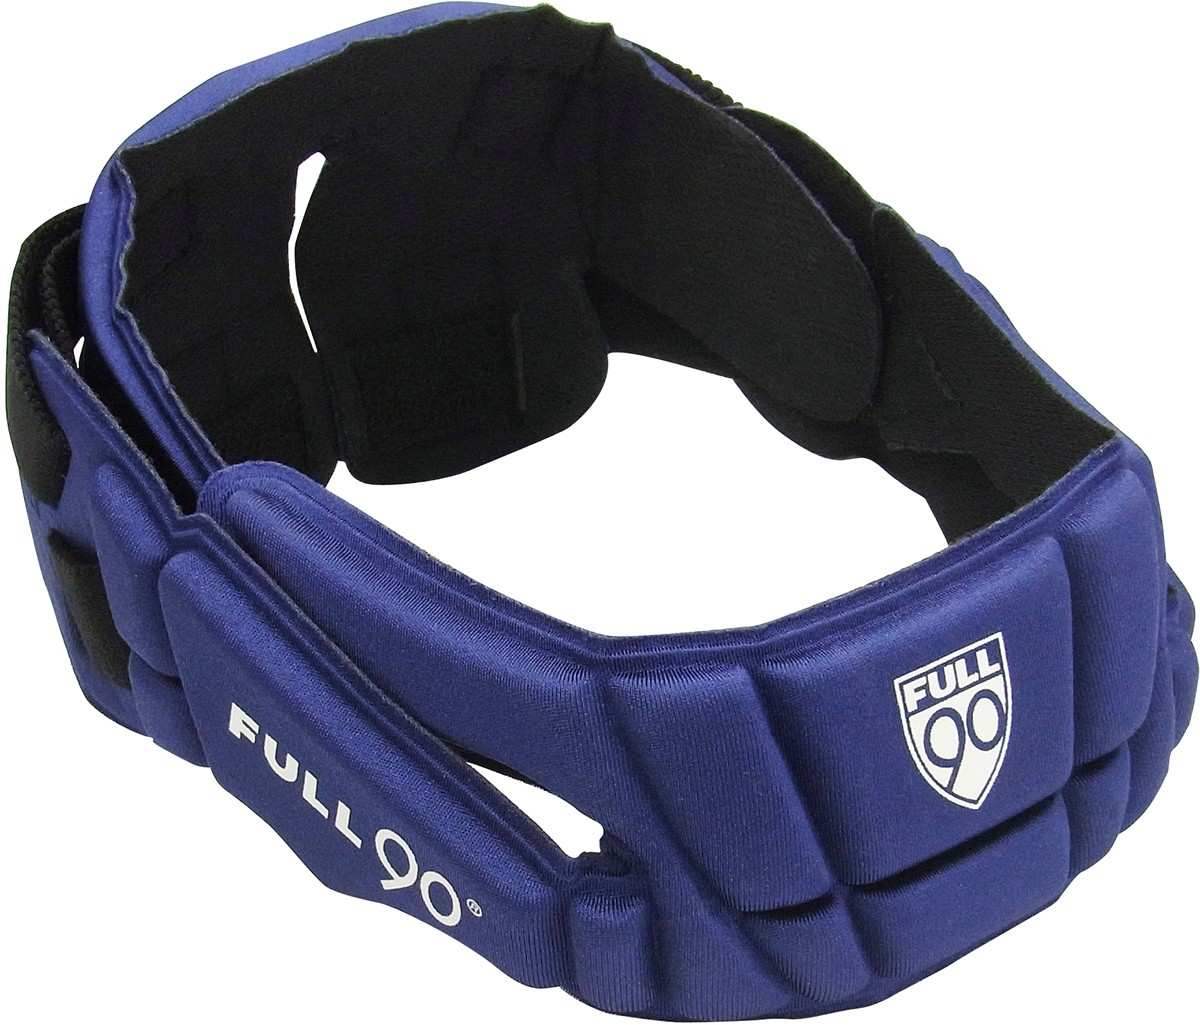 Full 90 Premier Protective Soccer Headguard A11 804